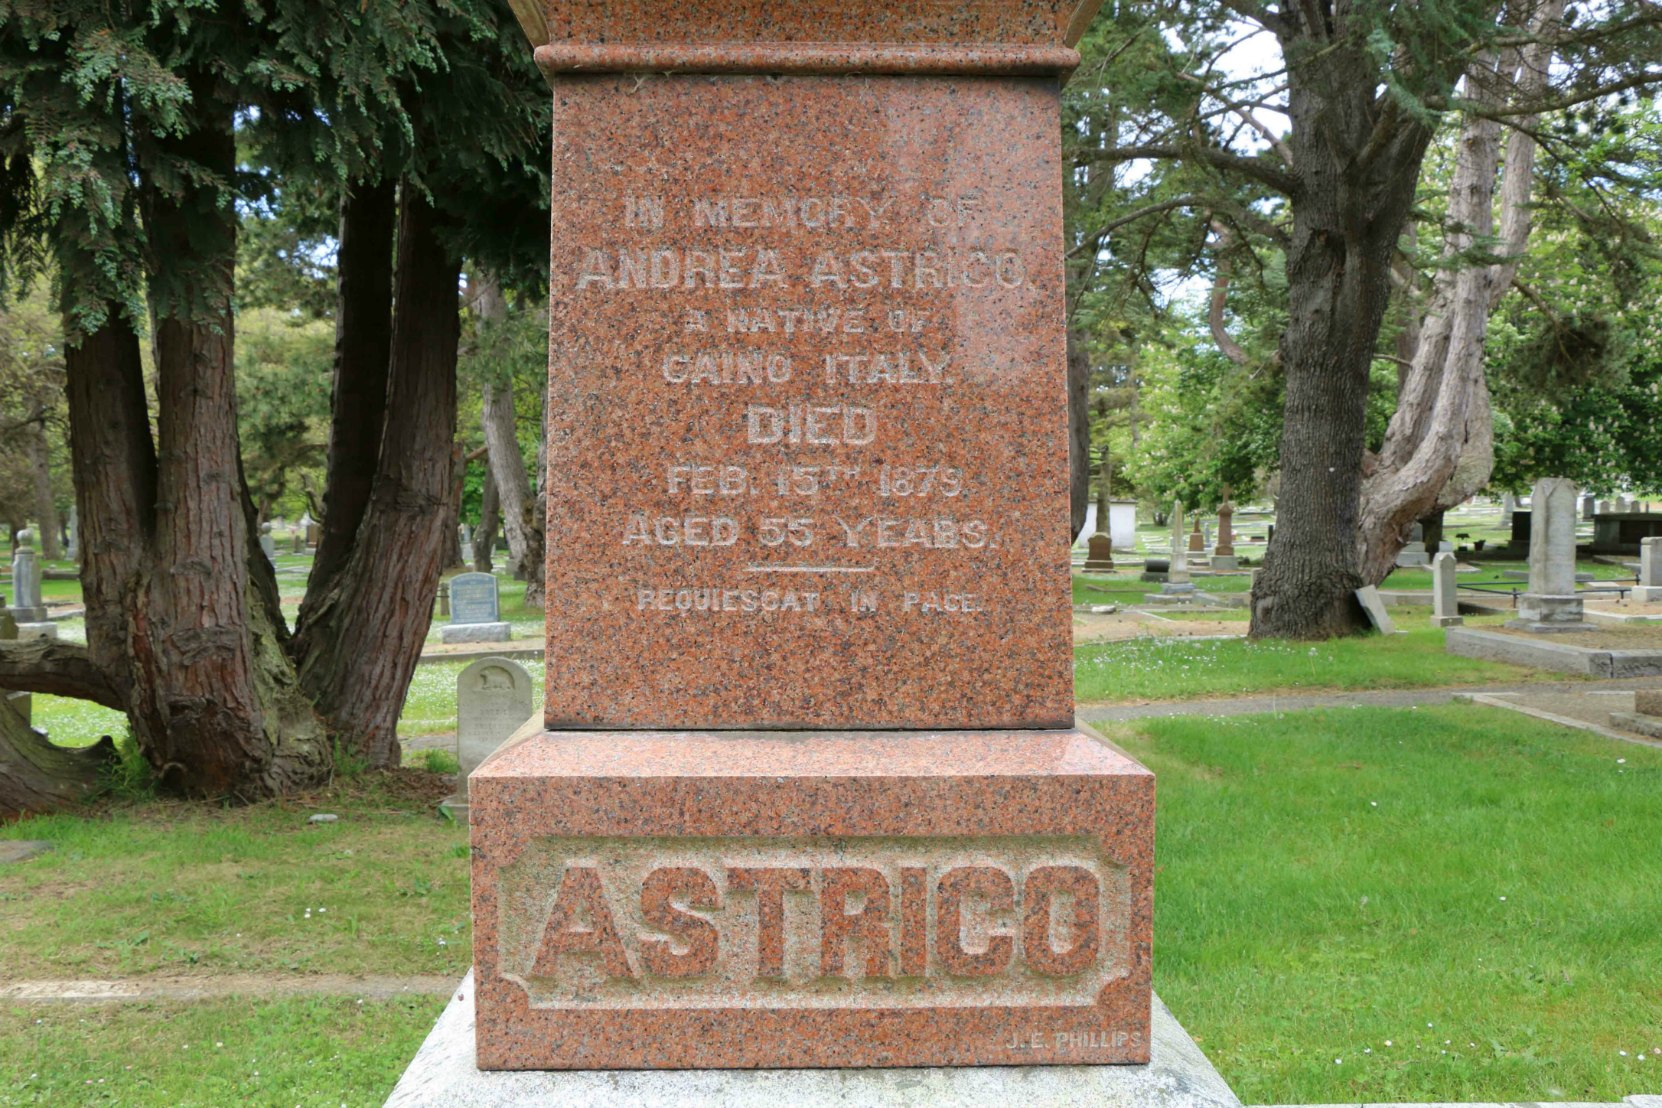 Inscription on Andrea Astrico grave, Ross Bay Cemetery, Victoria, B.C.